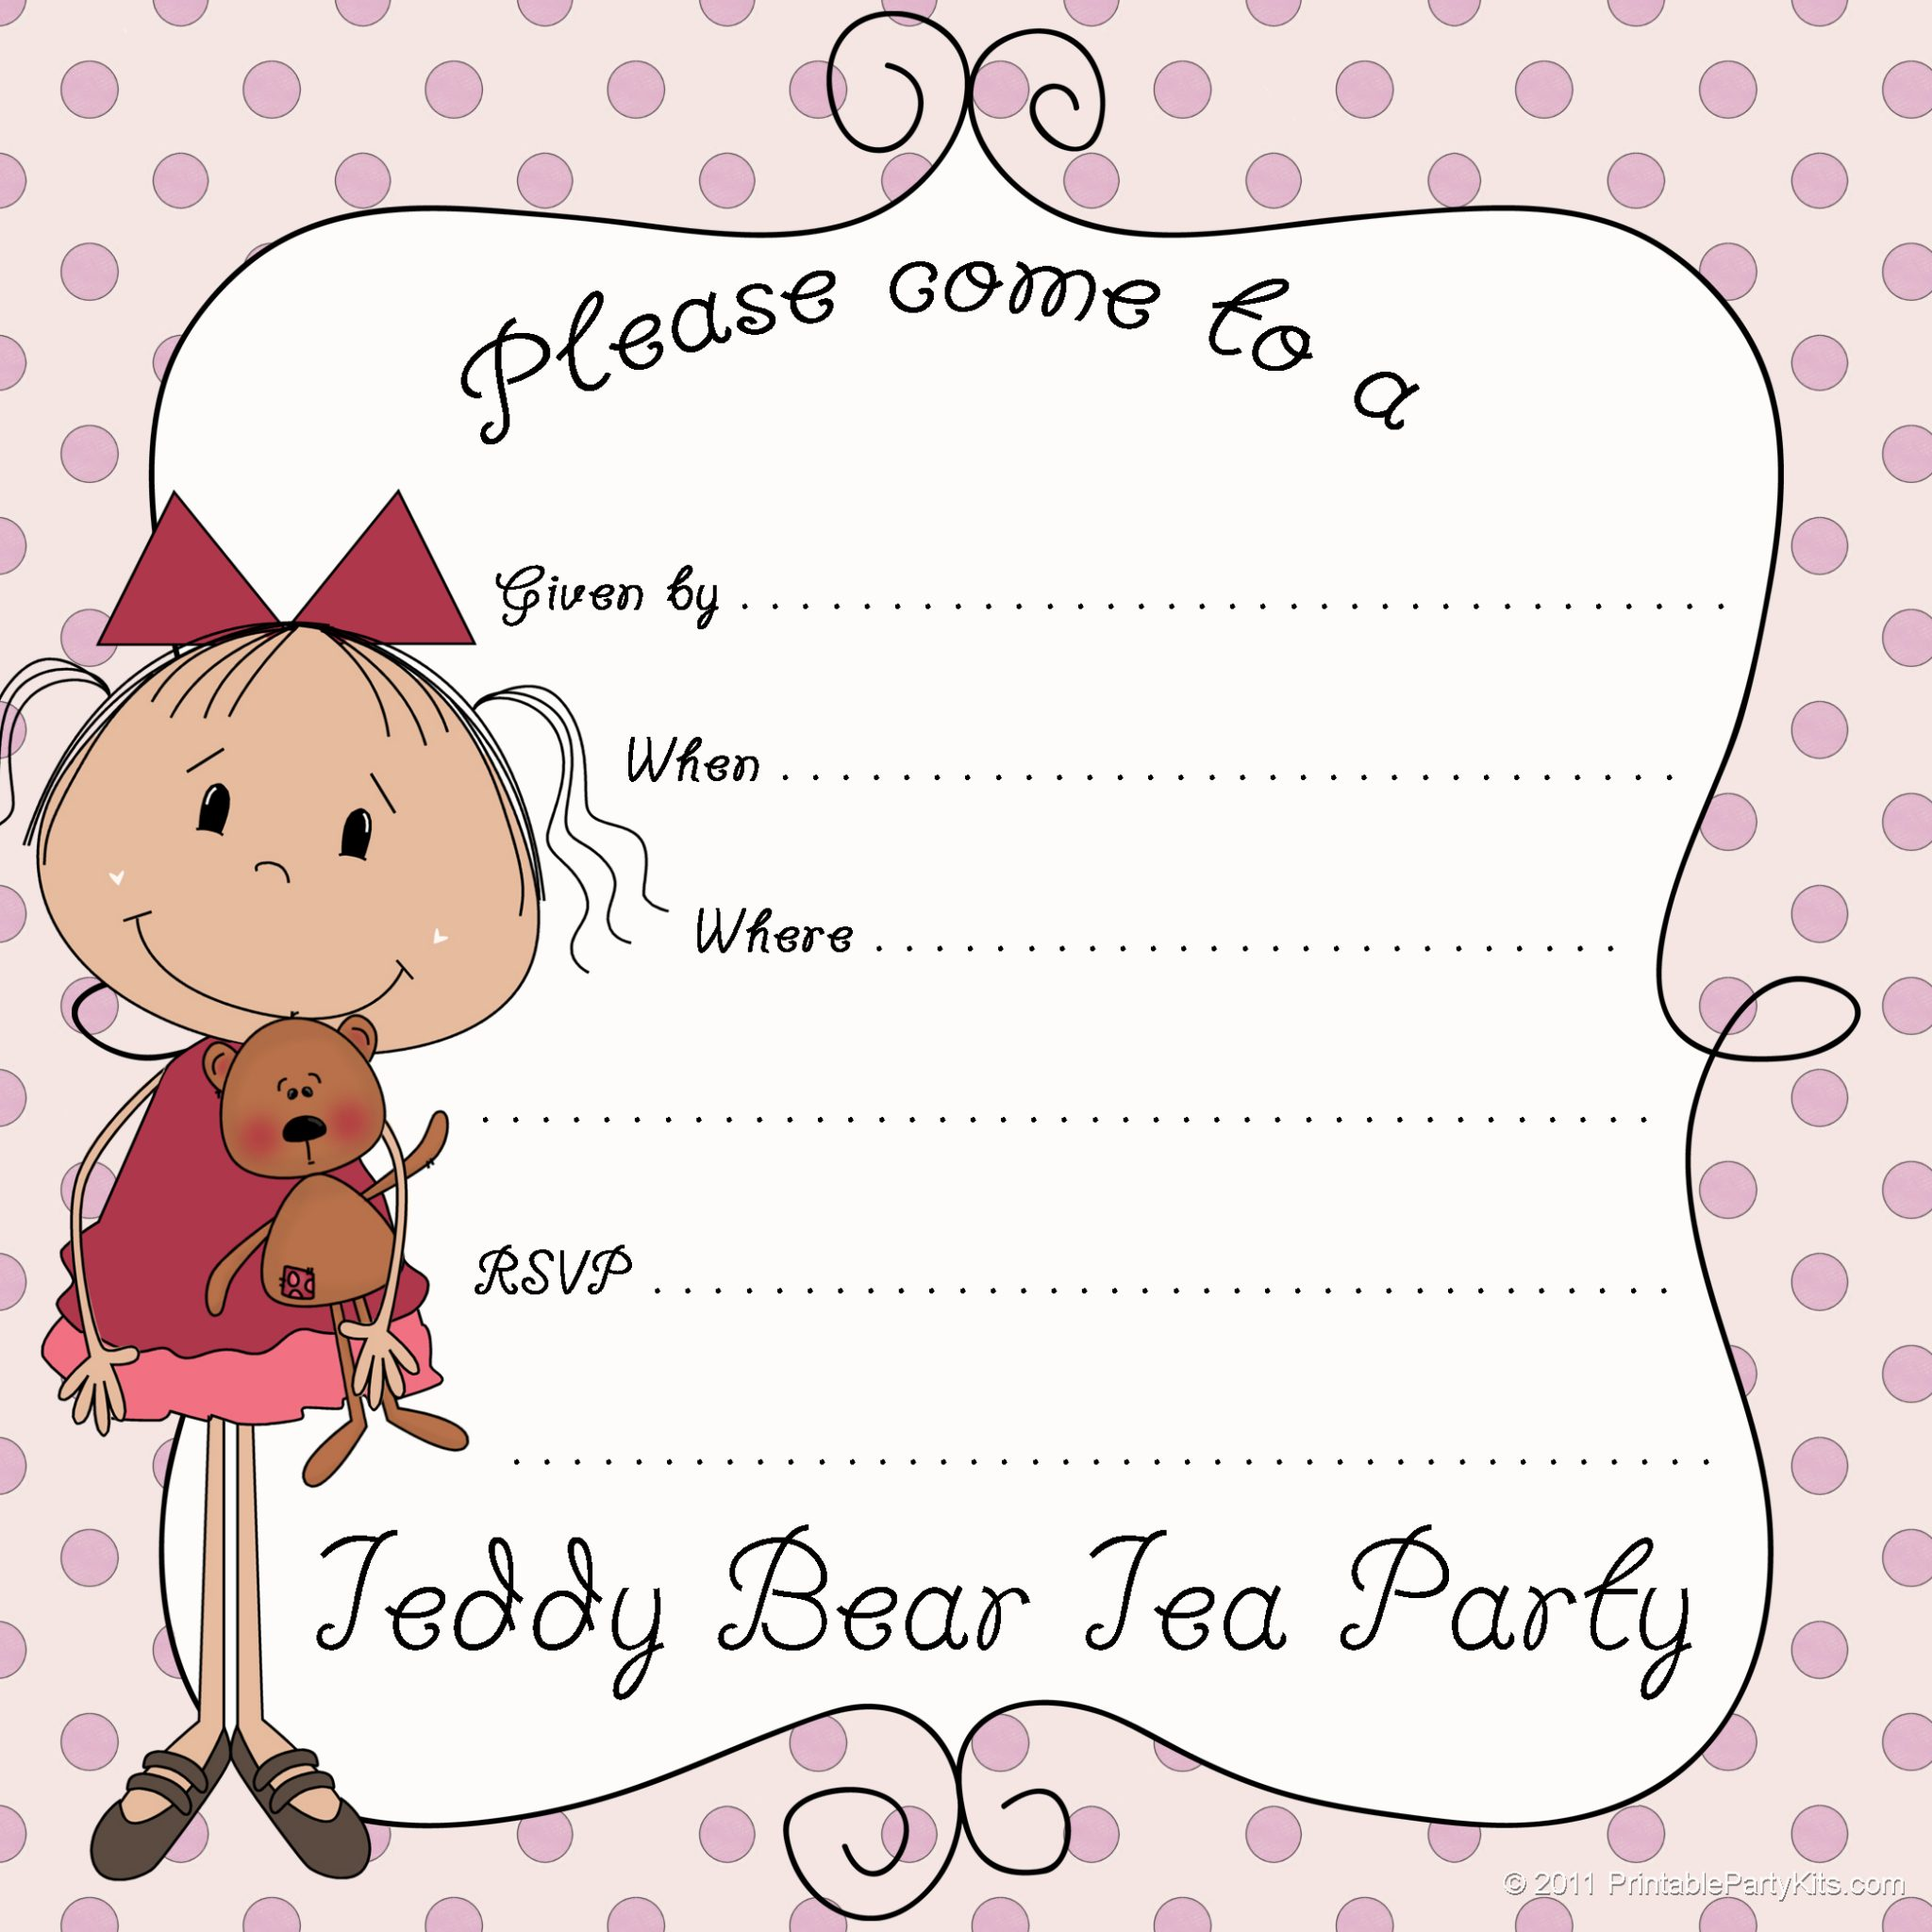 Printable Teddy Bear Tea Party Invitation Template